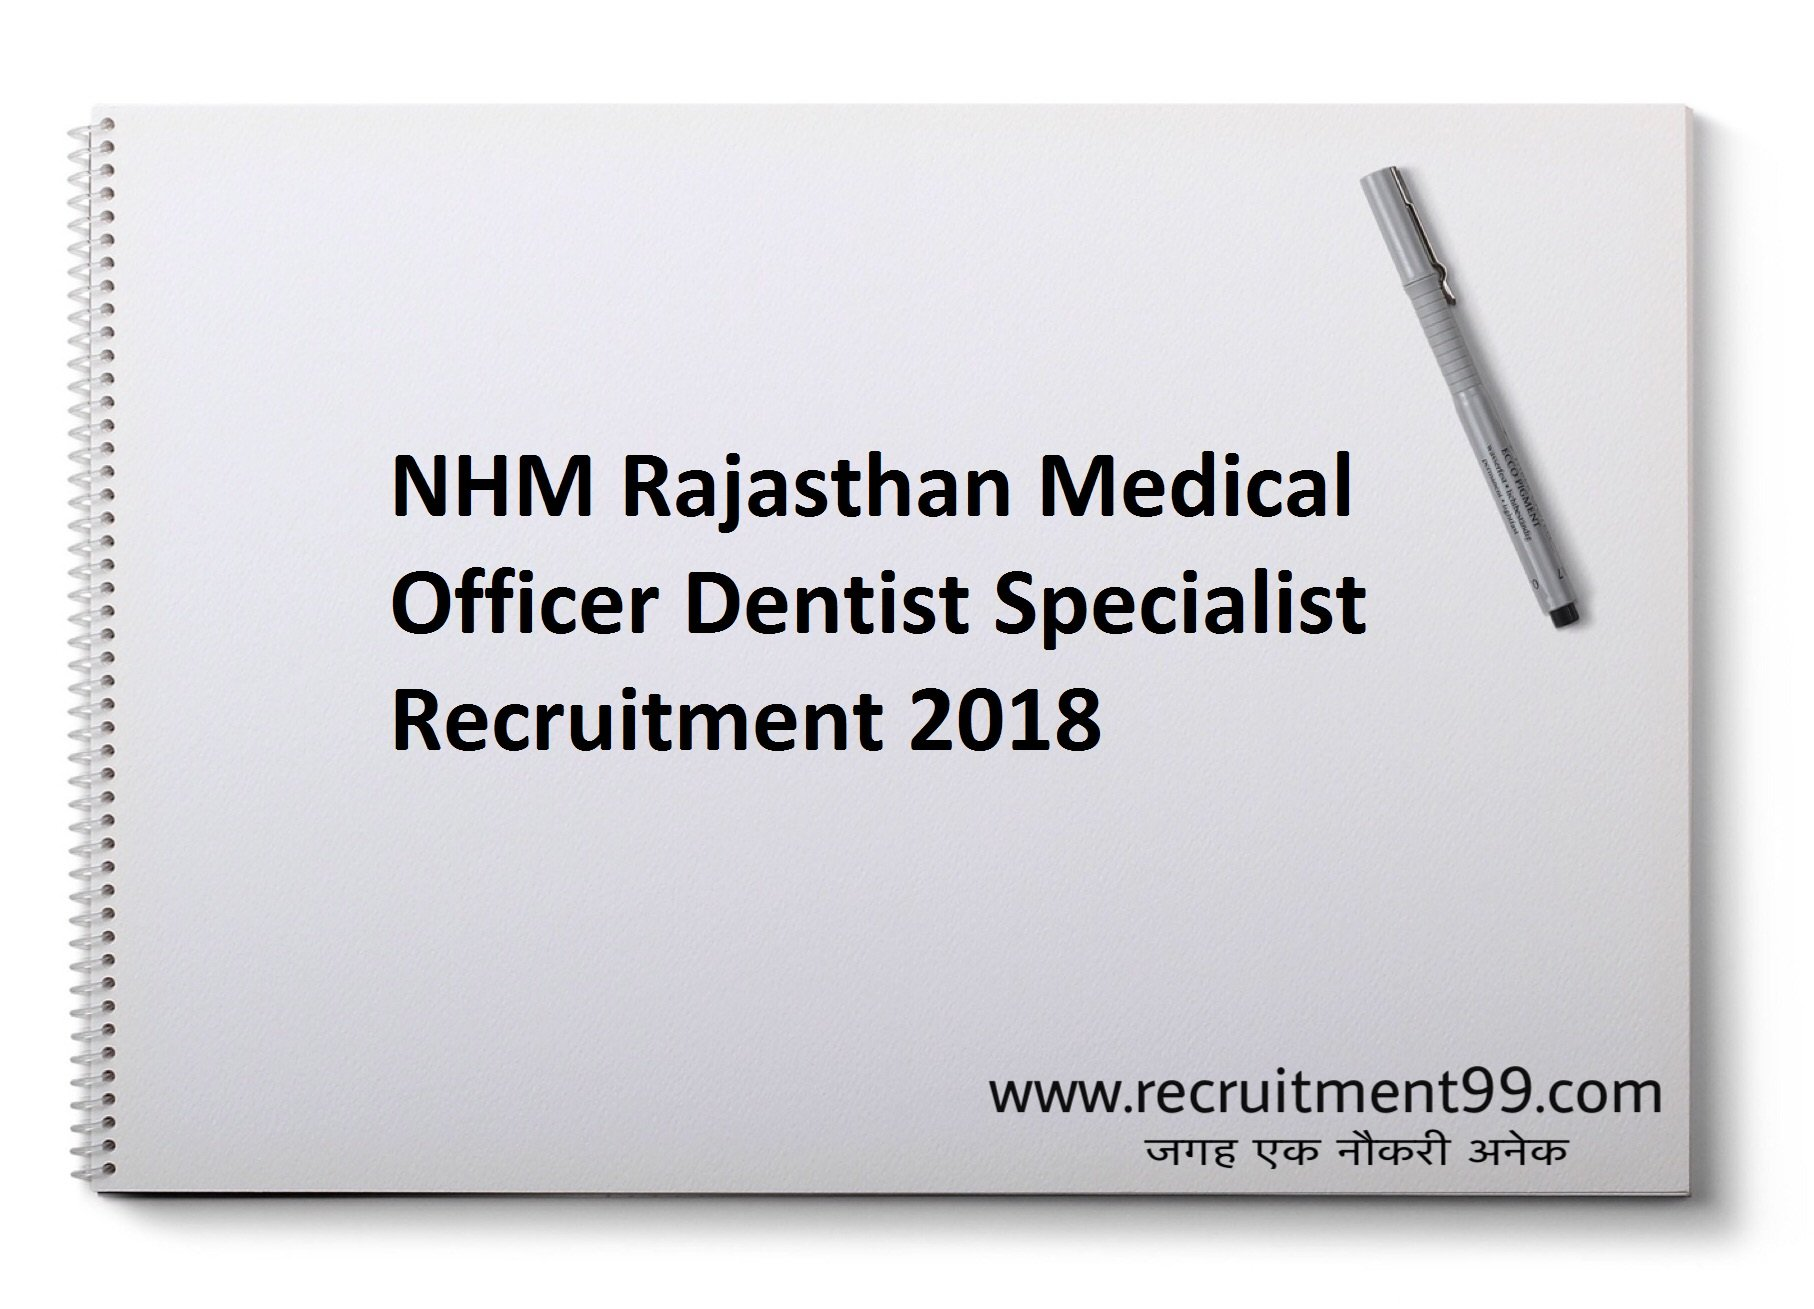 NHM Rajasthan Medical Officer, Dentist Specialist Recruitment Admit Card Result 2018